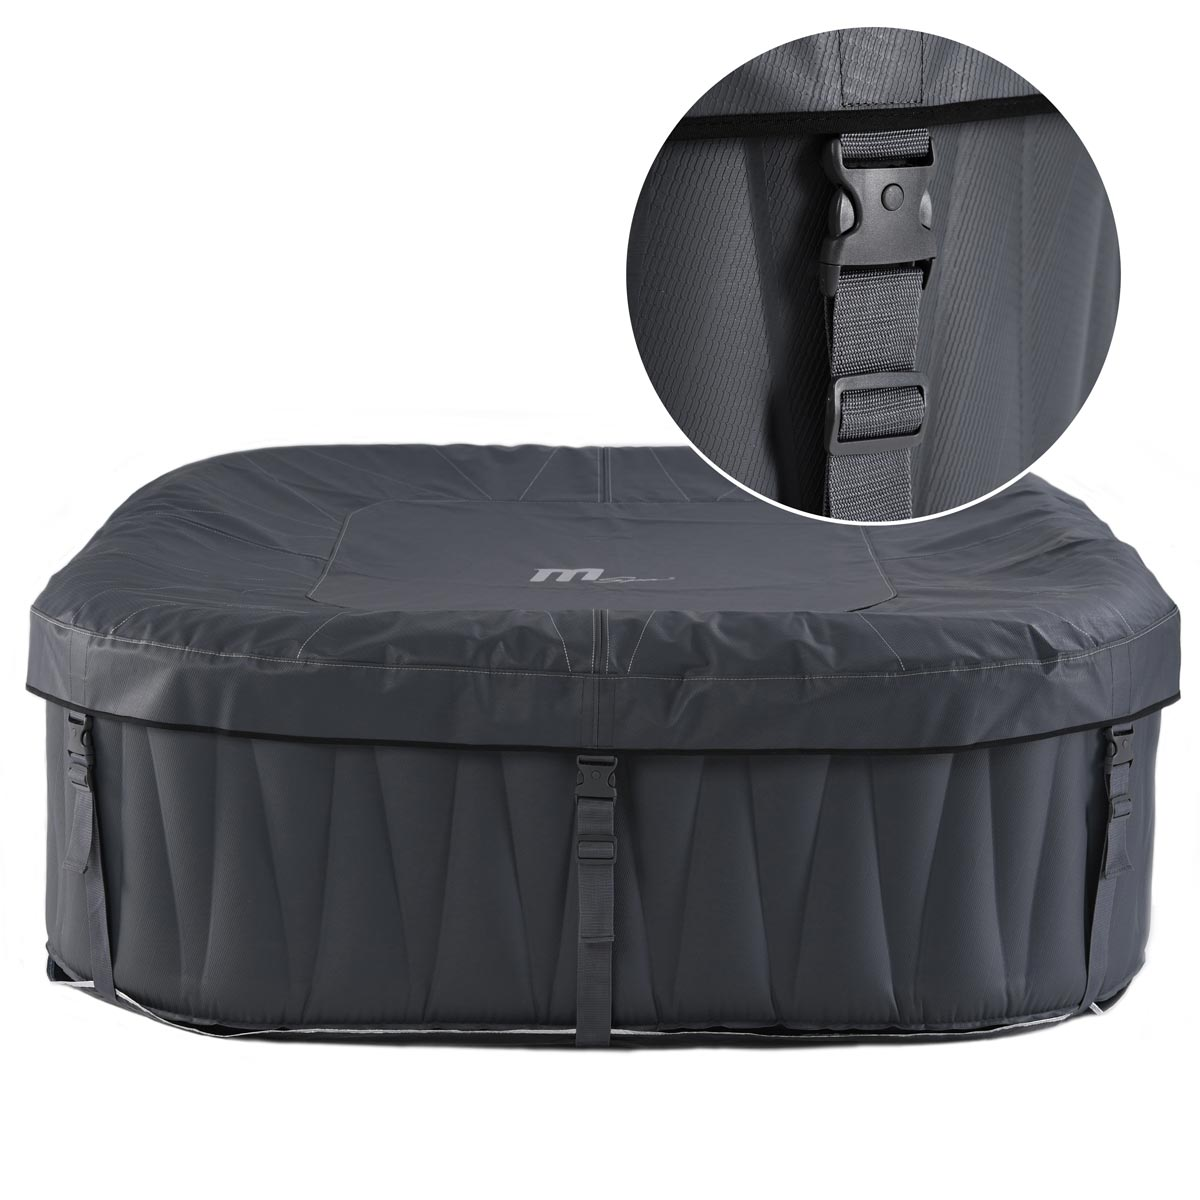 Whirlpool mspa in outdoor pool wellness heizung massage for Sofa vor heizung